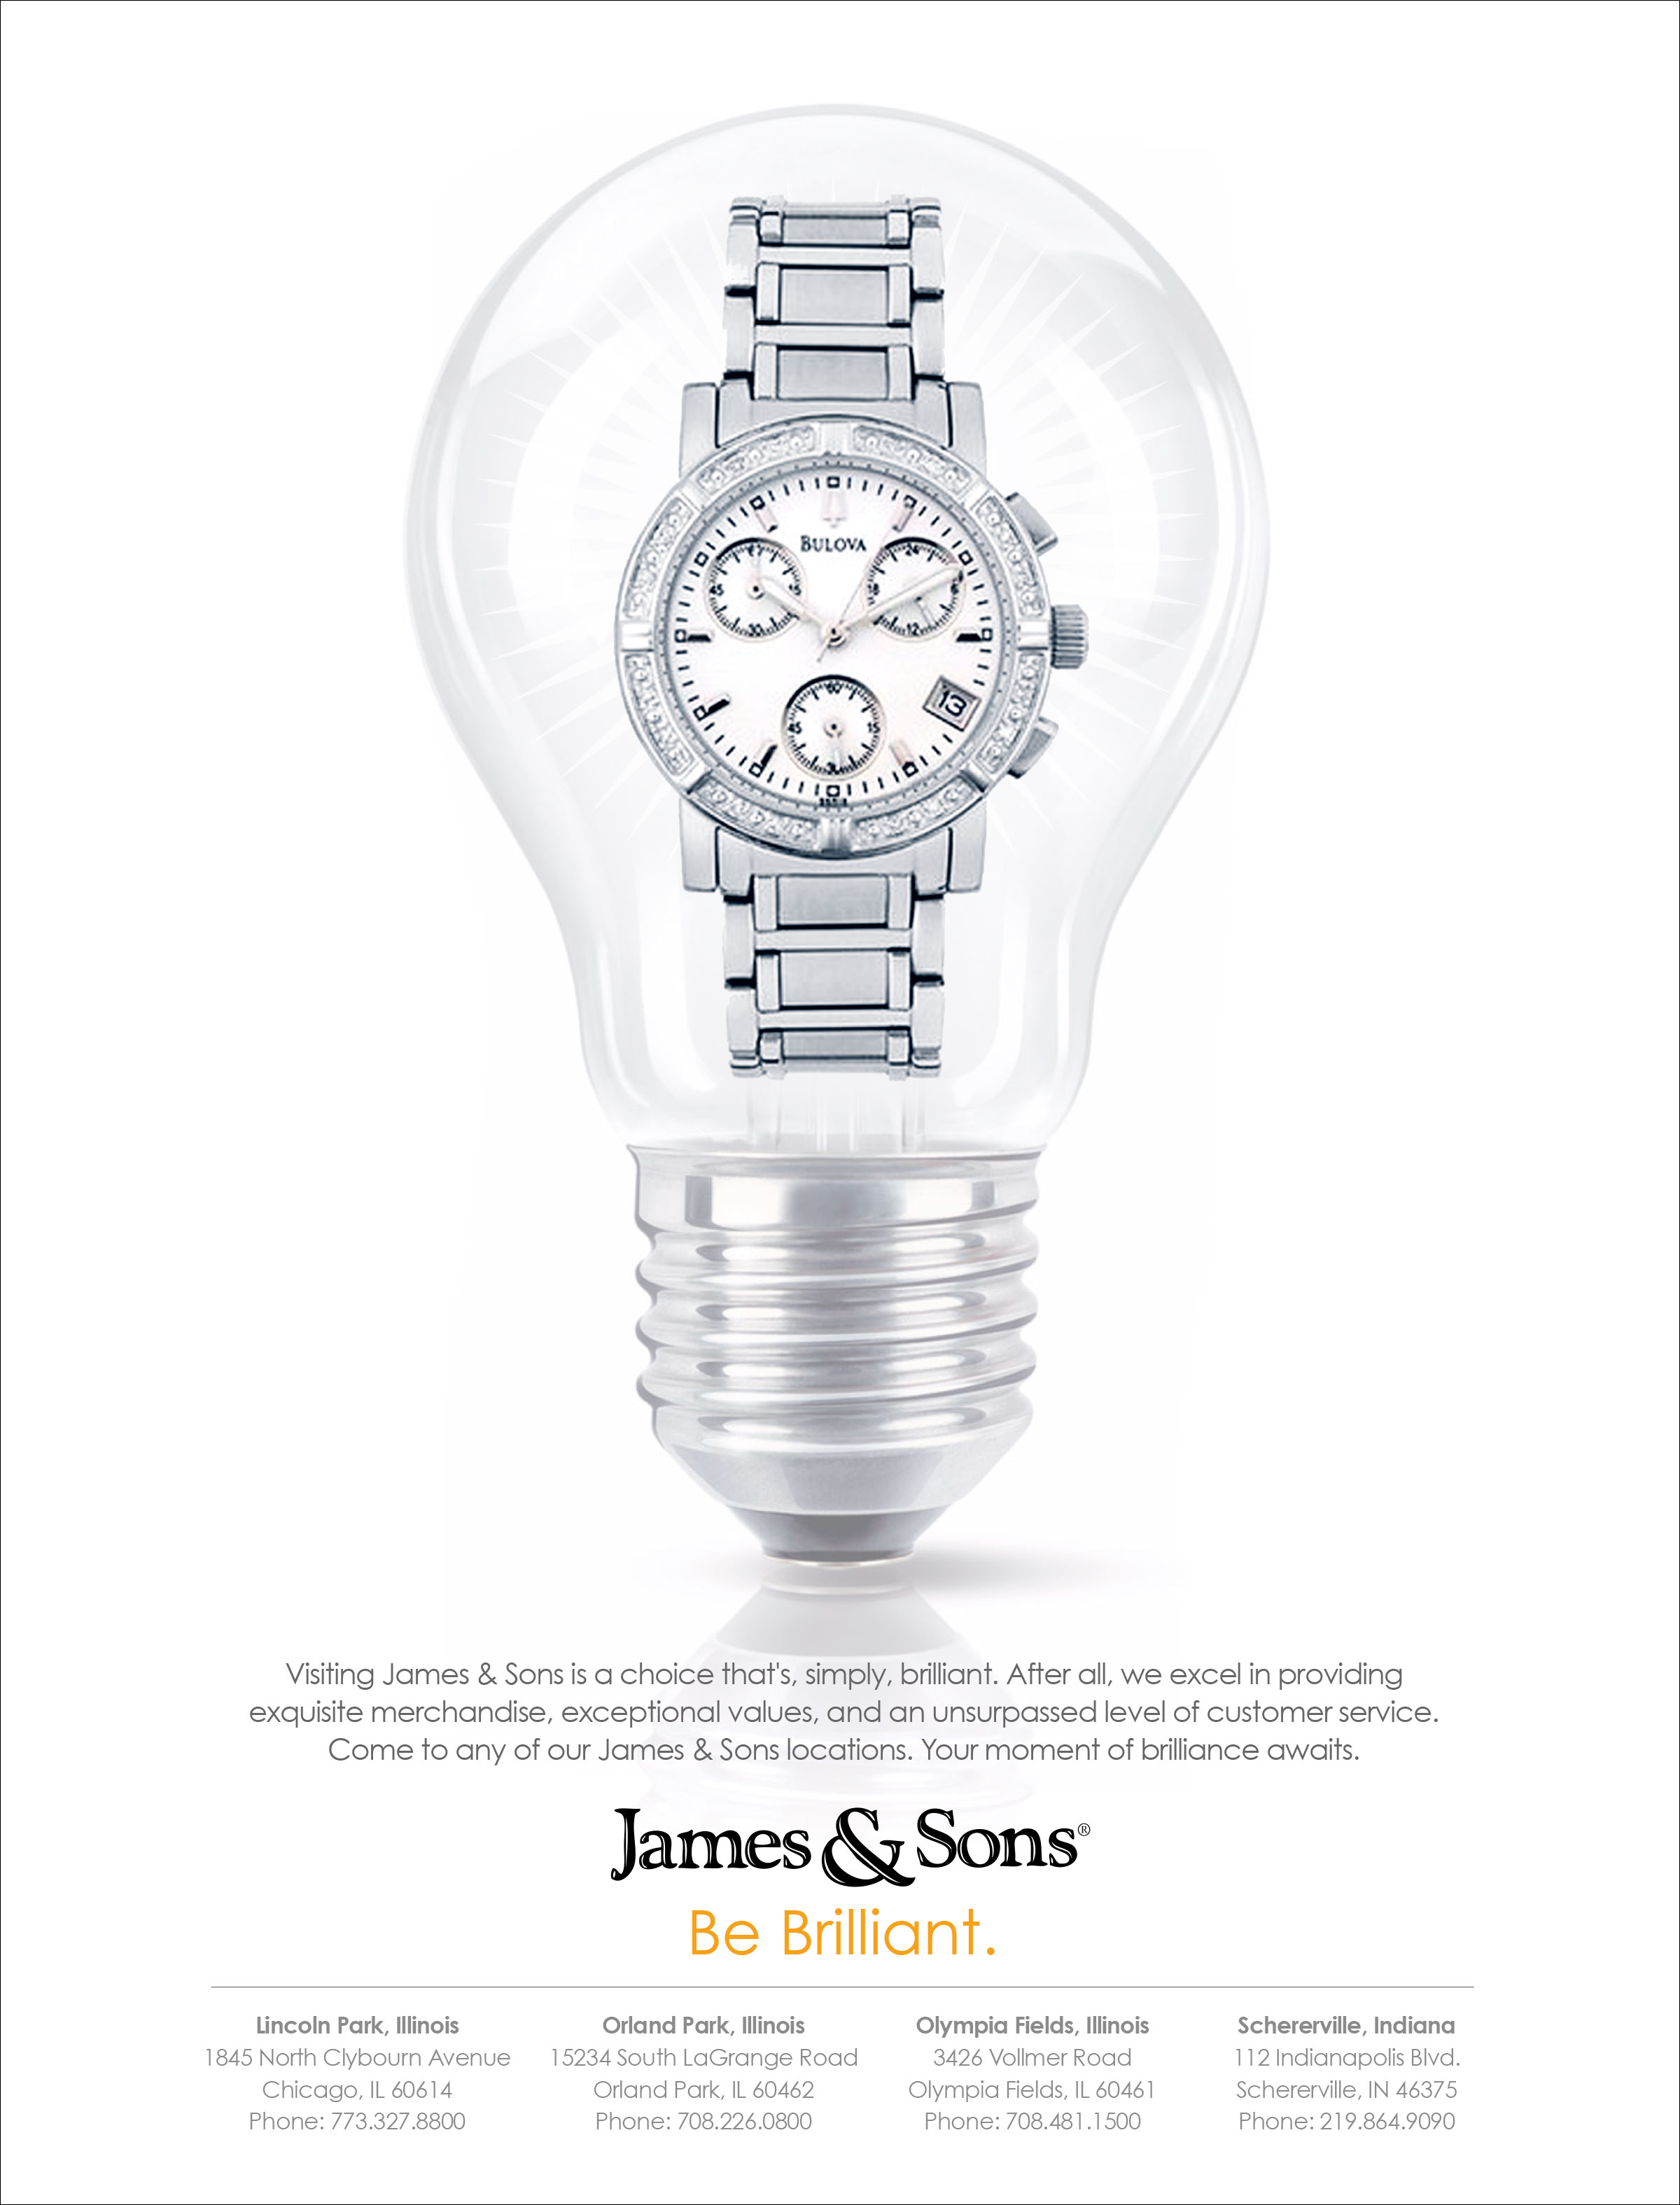 jamesandsons_magazine_a.jpg